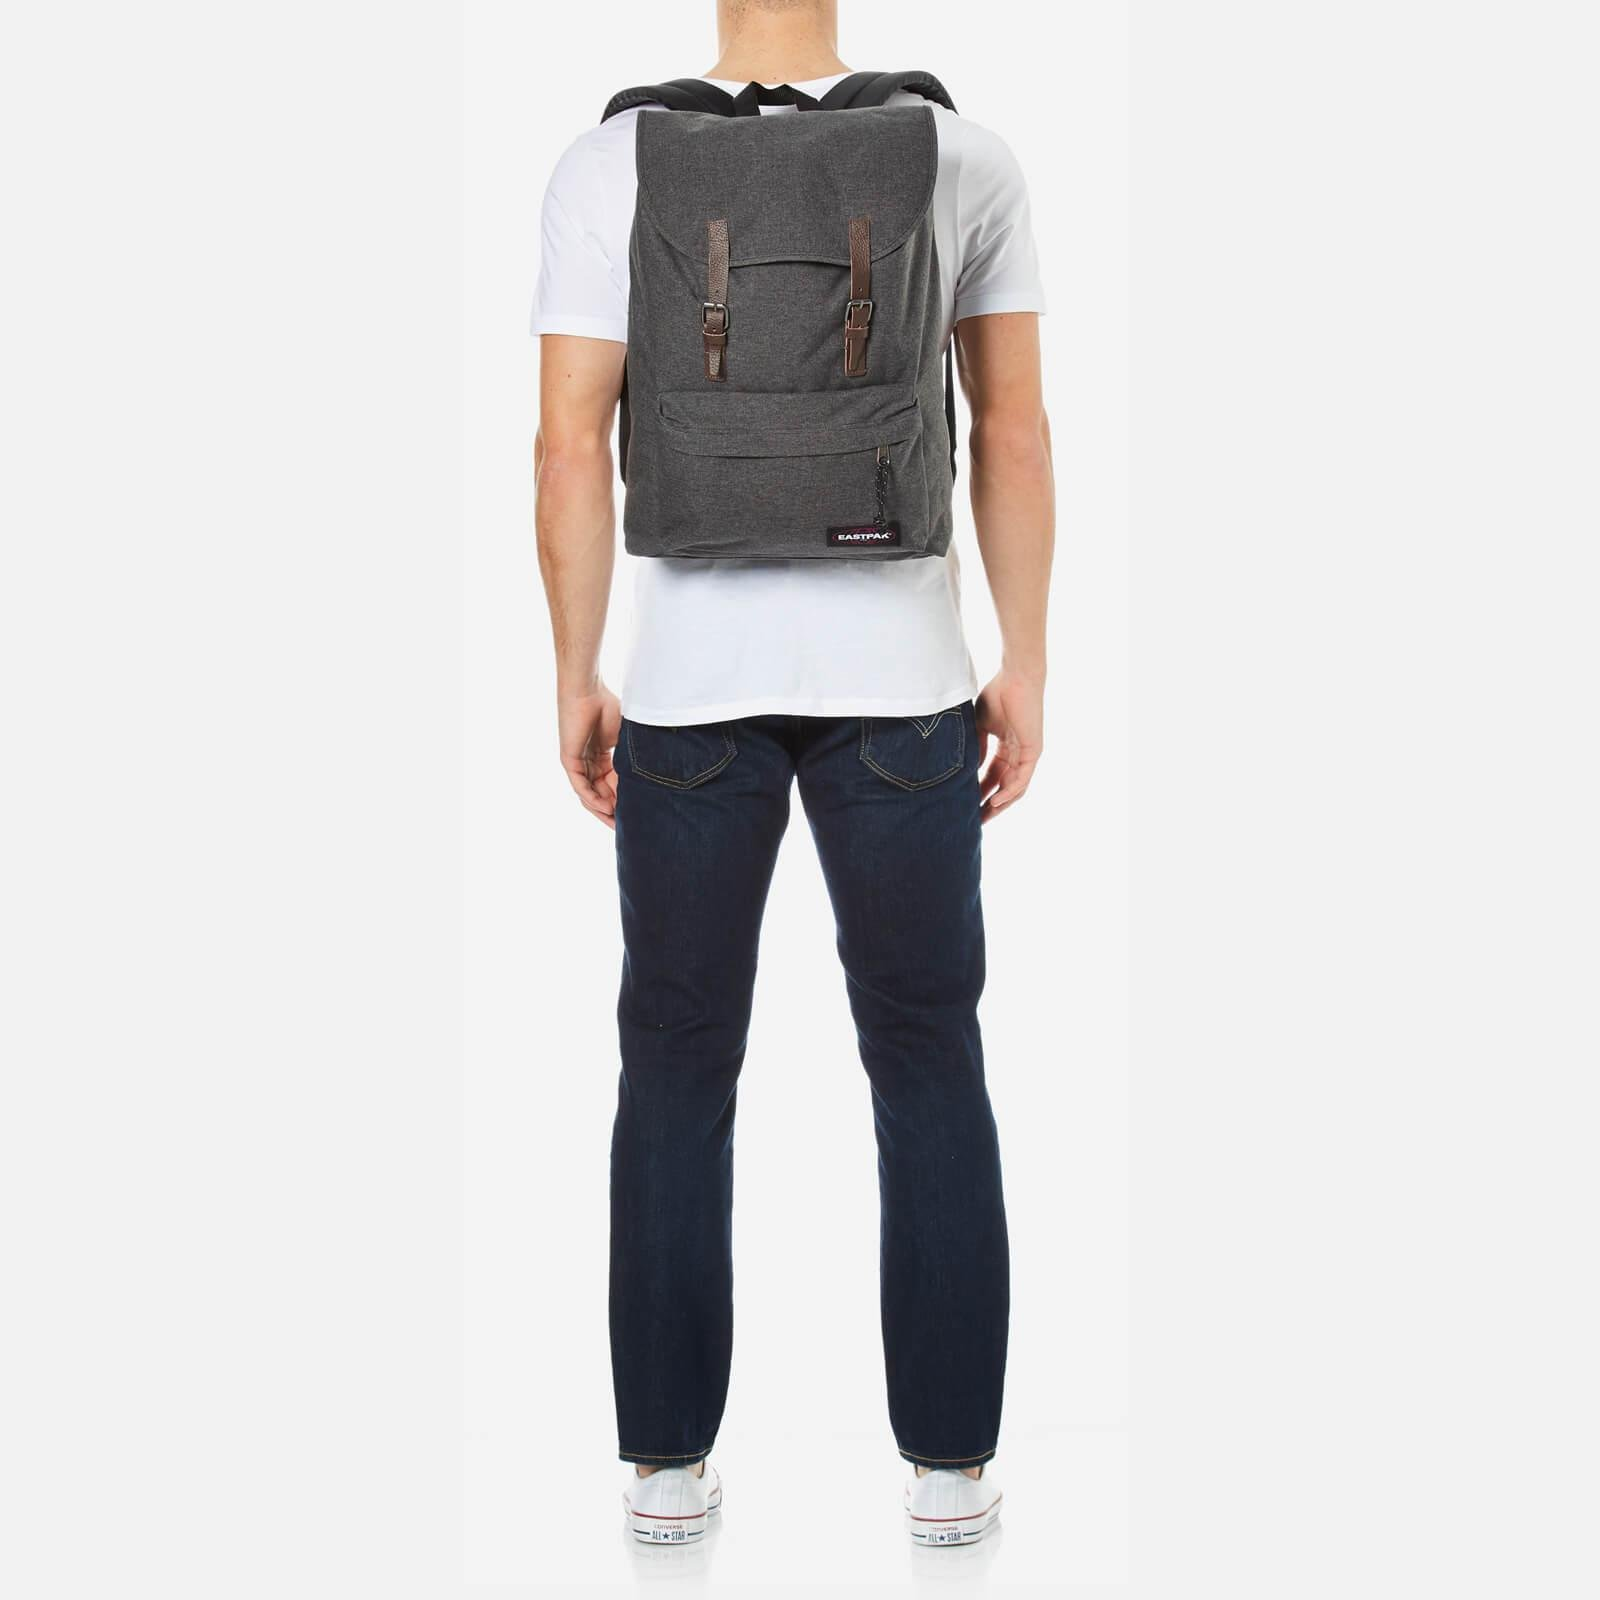 Eastpak - Gray Authentic London Backpack for Men - Lyst. View fullscreen 6146adcdc0eaa